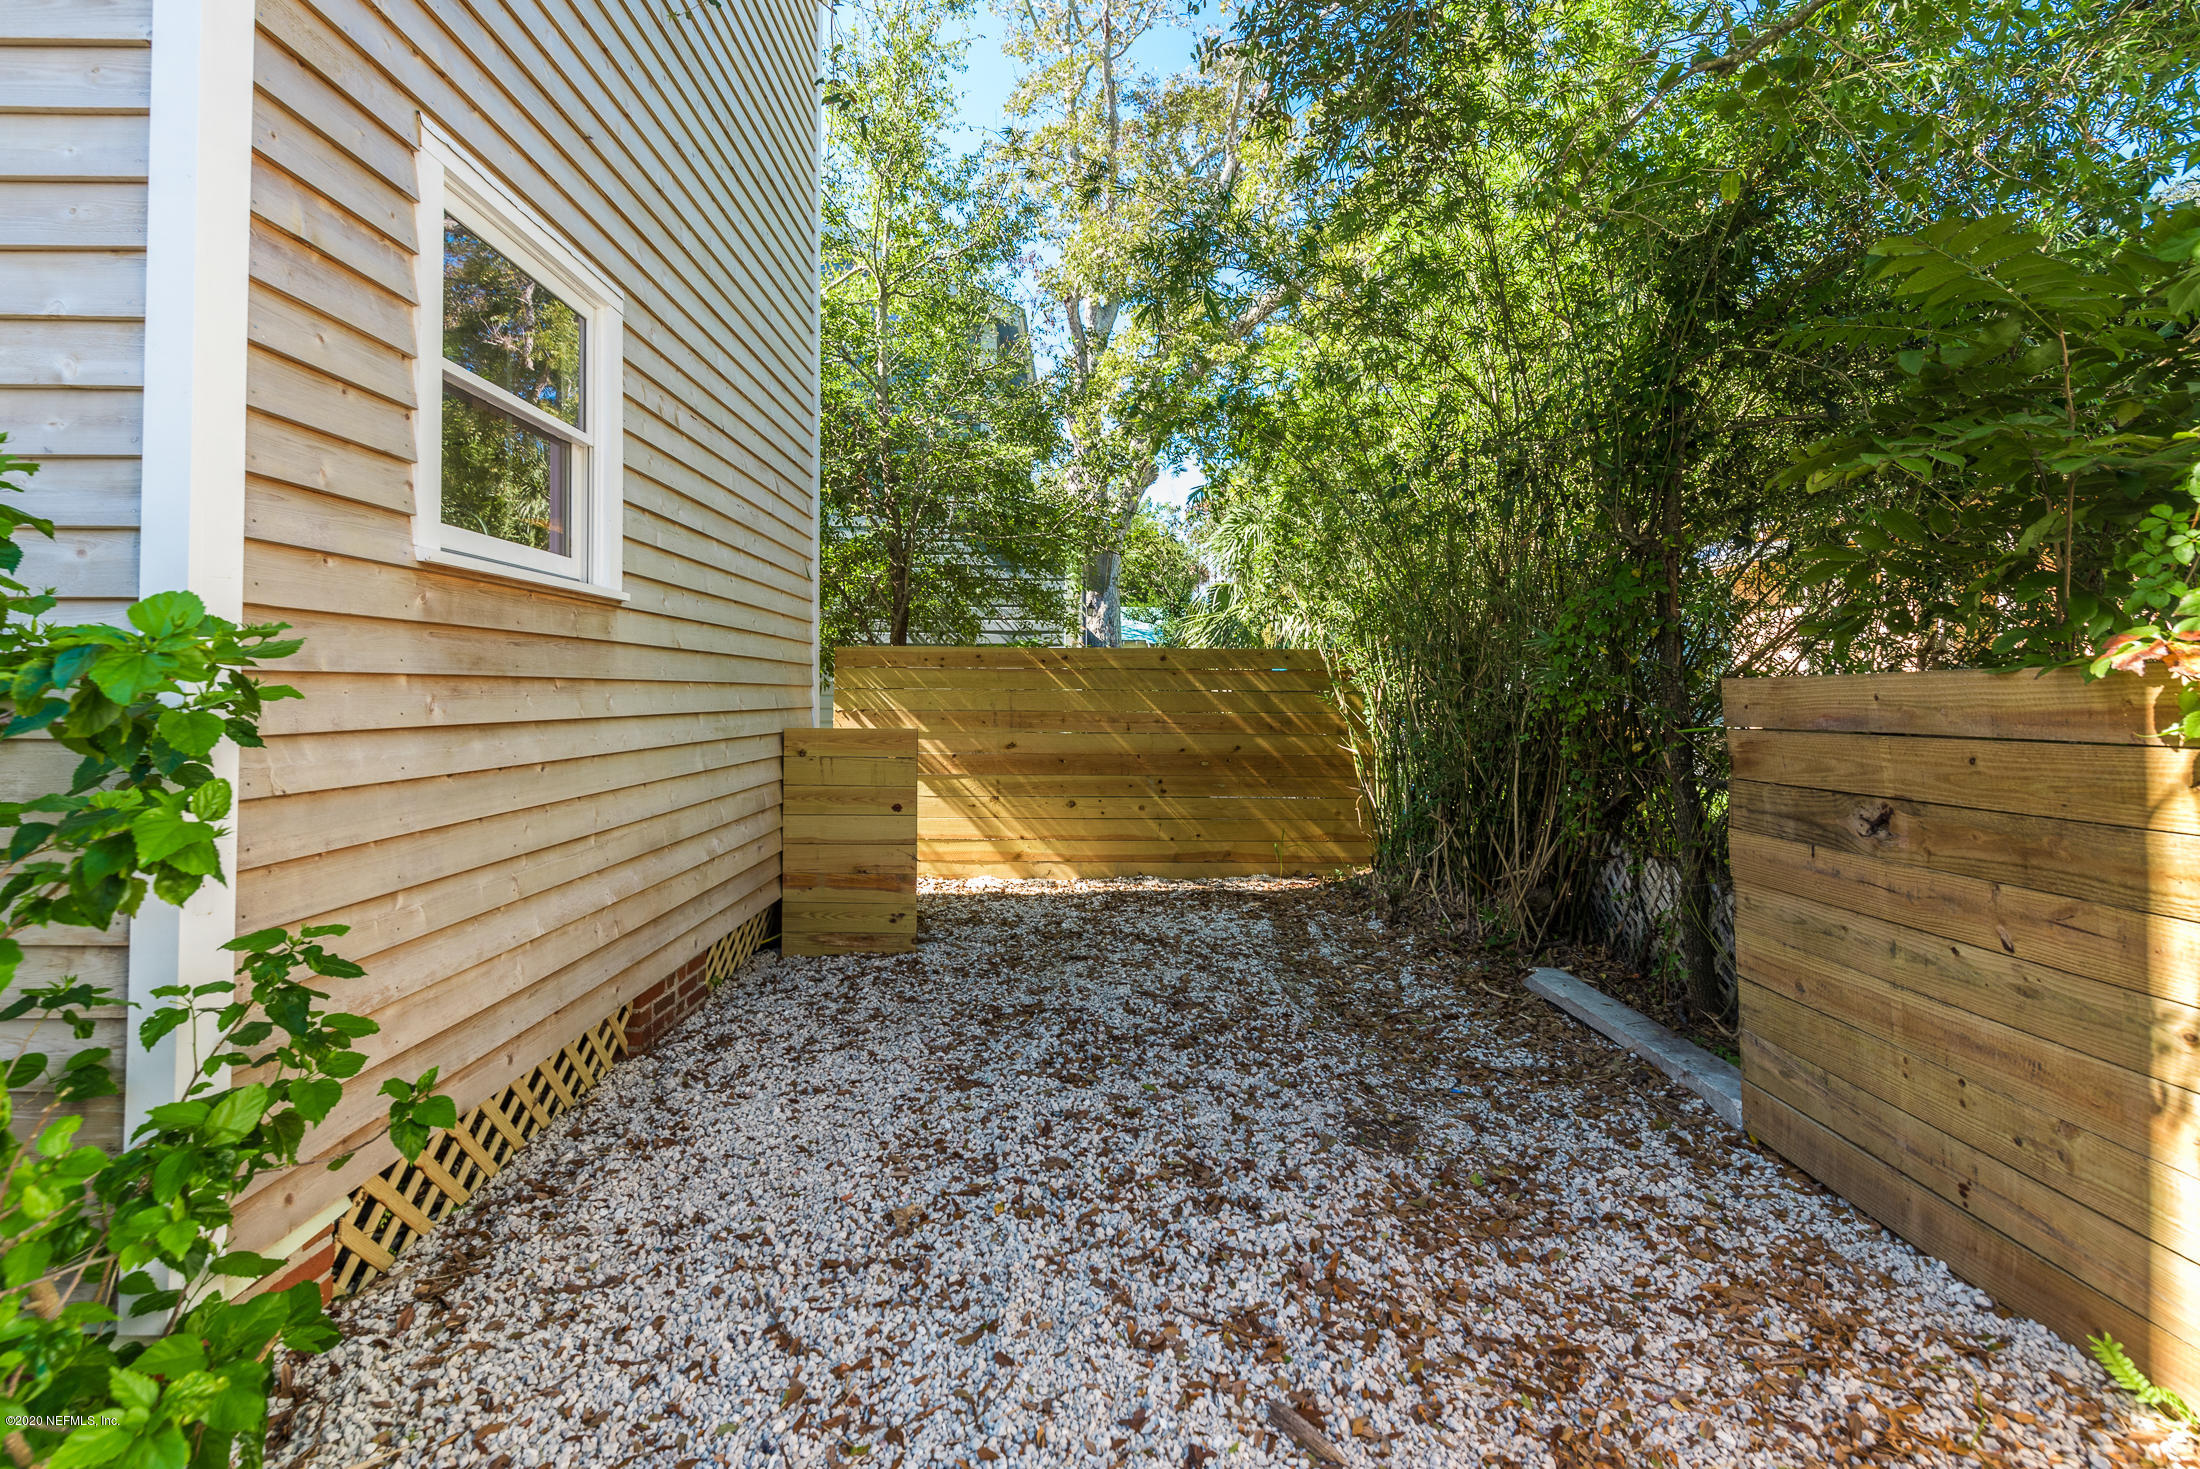 120 WASHINGTON, ST AUGUSTINE, FLORIDA 32084, 2 Bedrooms Bedrooms, ,1 BathroomBathrooms,Residential,For sale,WASHINGTON,1082047